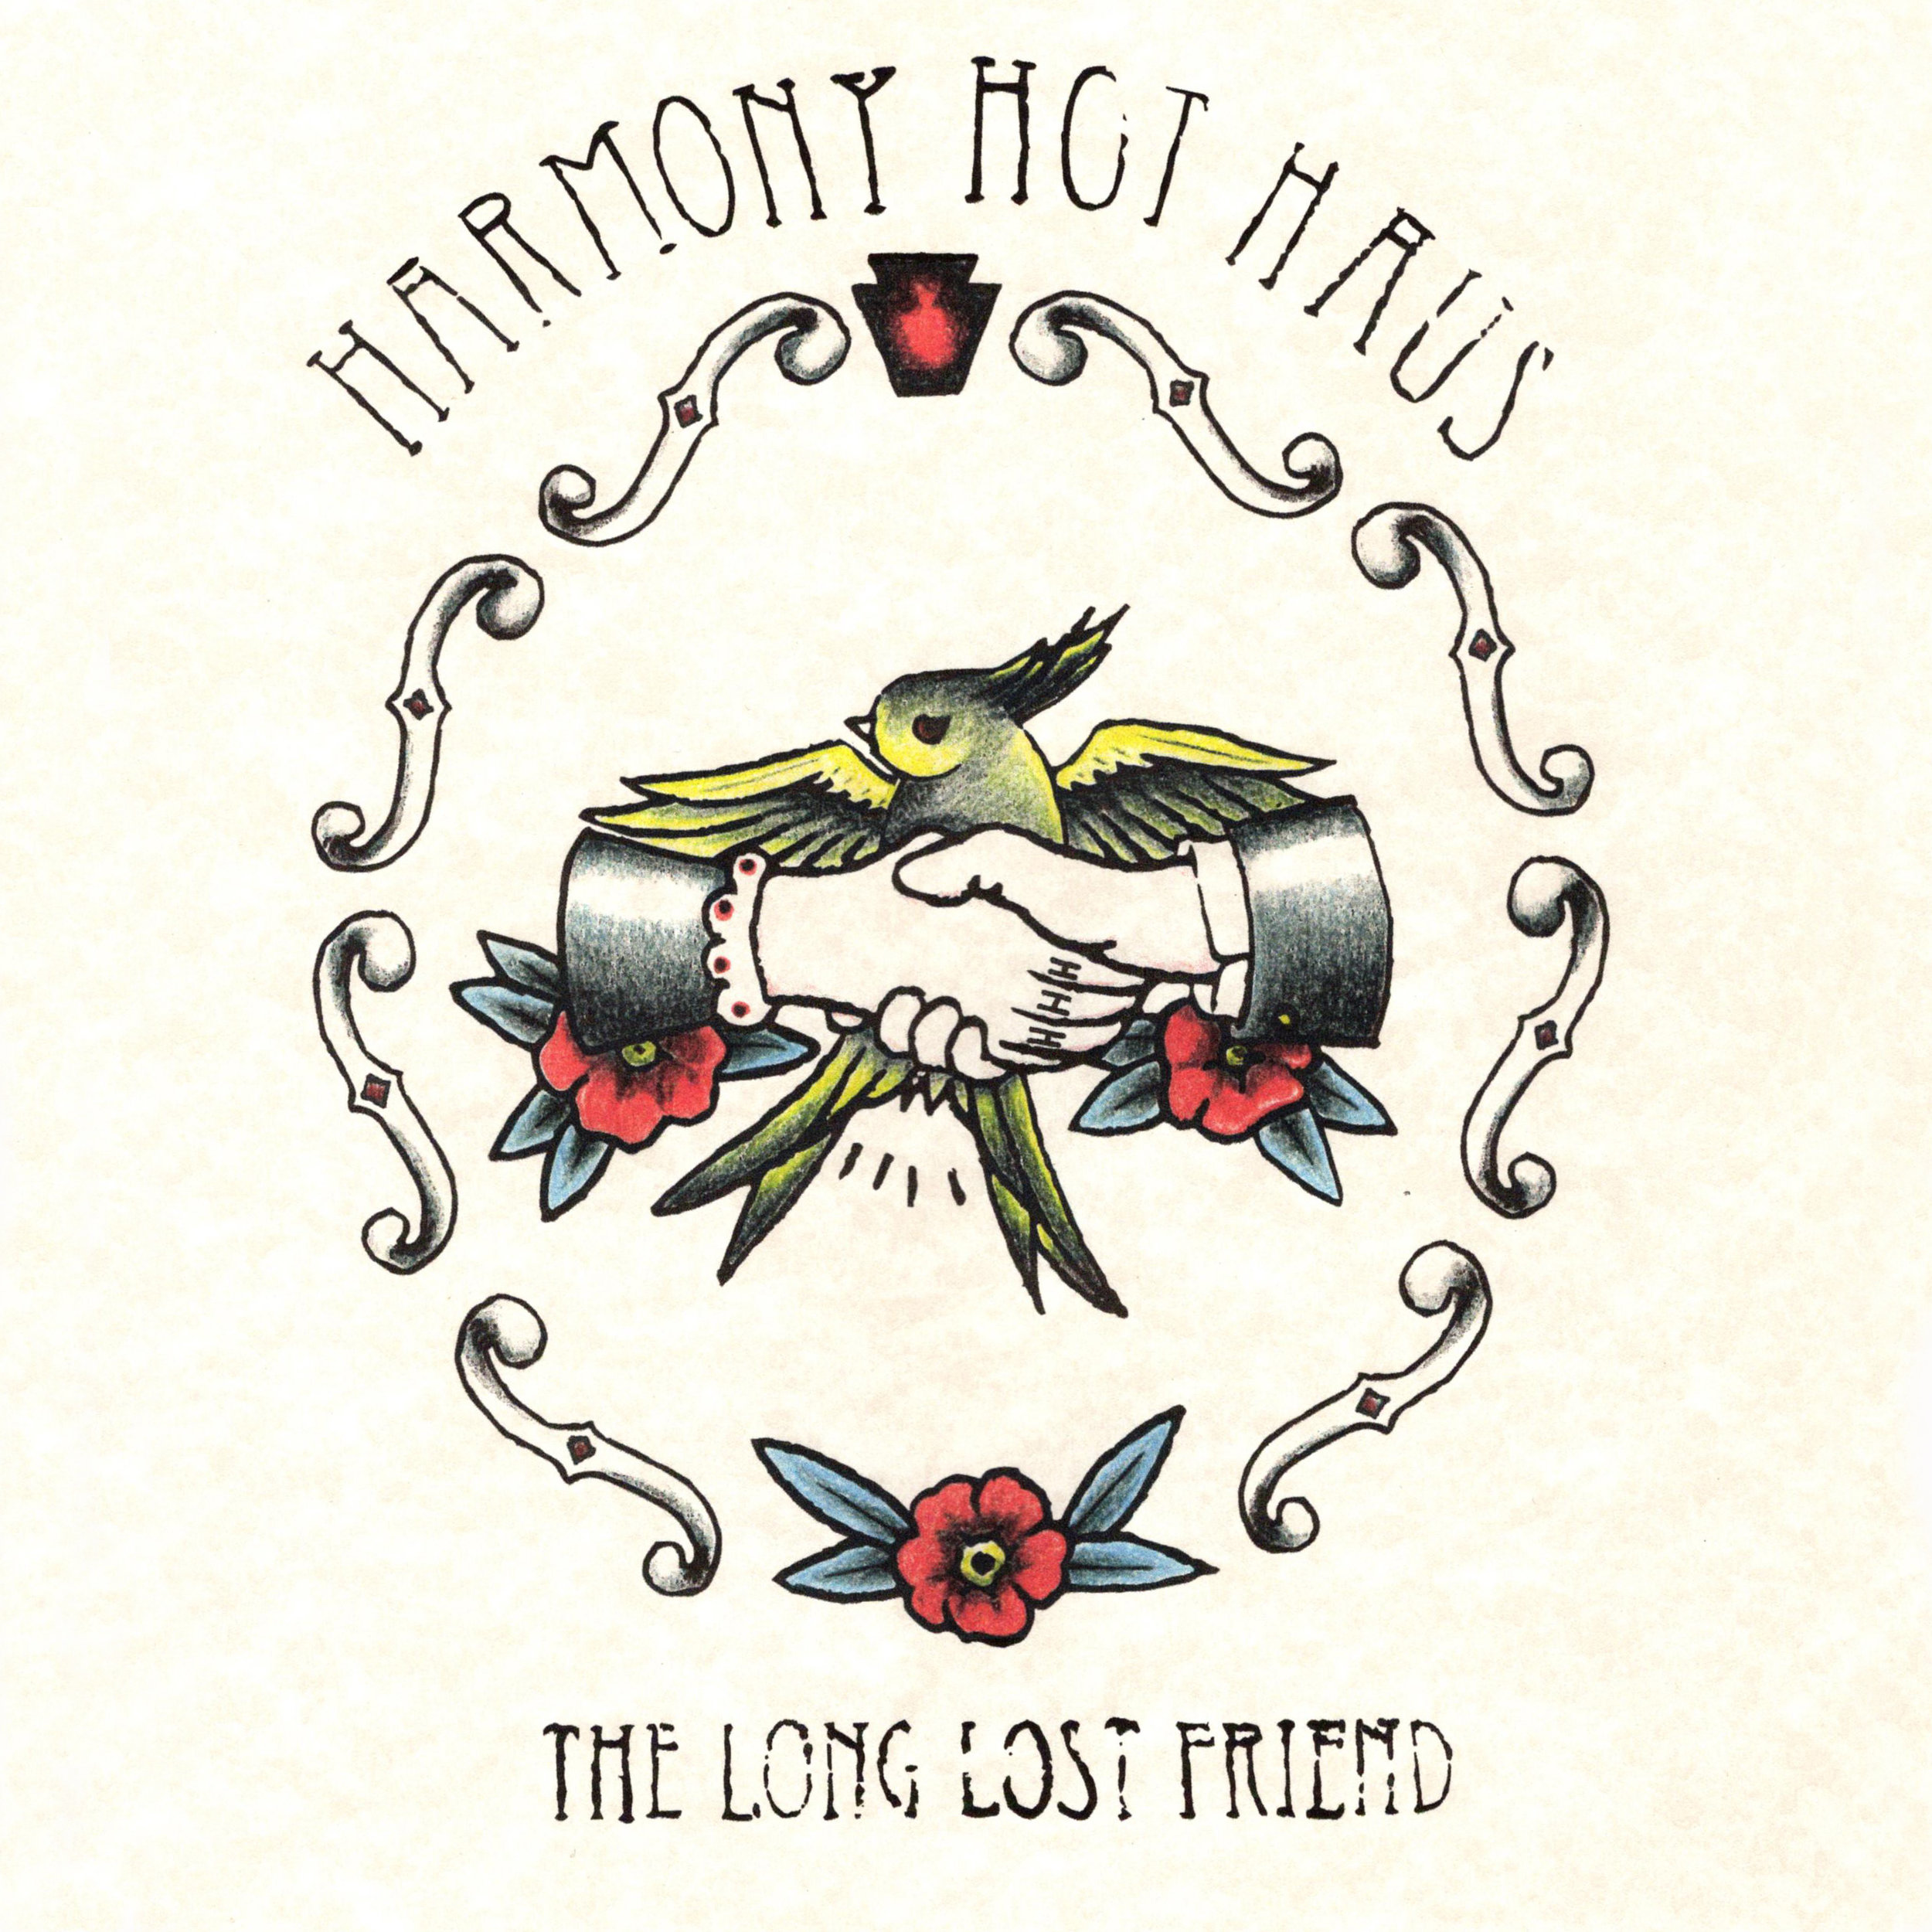 Hey all!  We're super excited to release our new album The Long Lost Friend.  It will release on May 5th 2018. We're going to have the release show at Harmony Opera House. 7Pm  Get  tickets   here  while you can!  https://harmonyhothaus.ticketleap.com/harmonyhothaus/   This is a Sage Artisan Group Event.